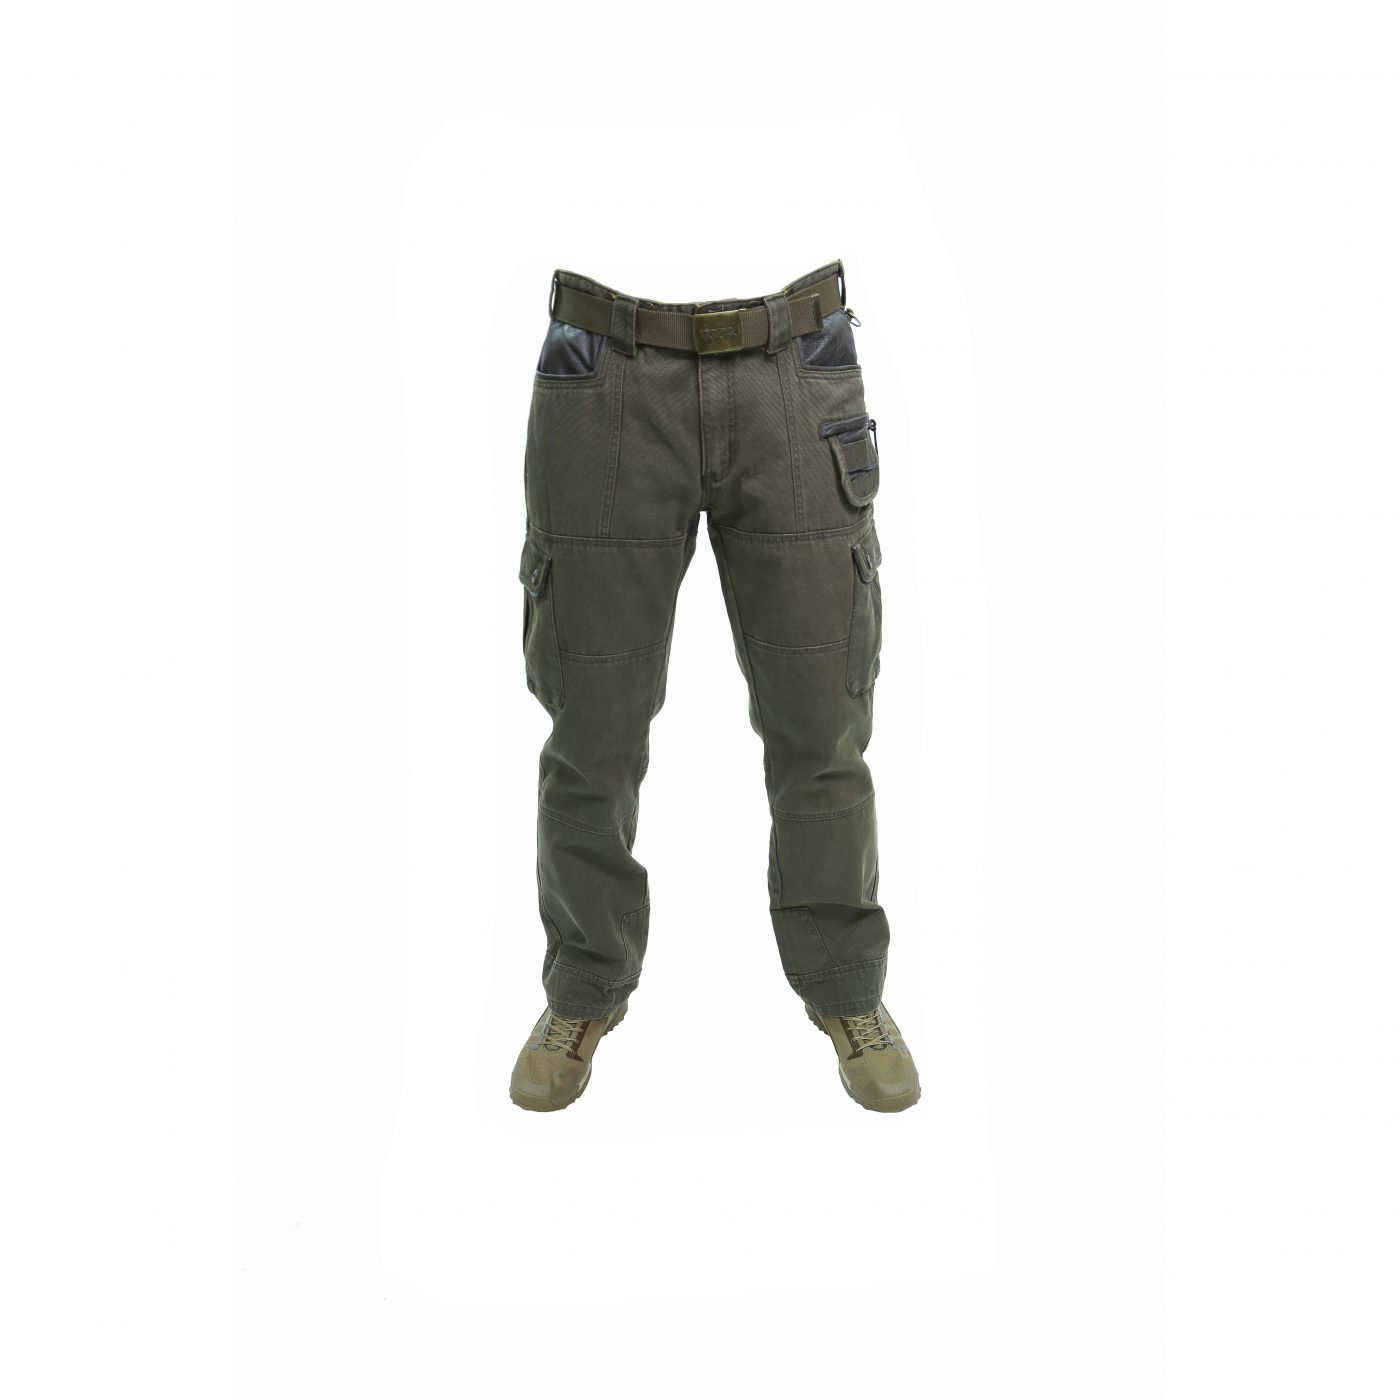 Брюки Oryx Light Trousers Harkila